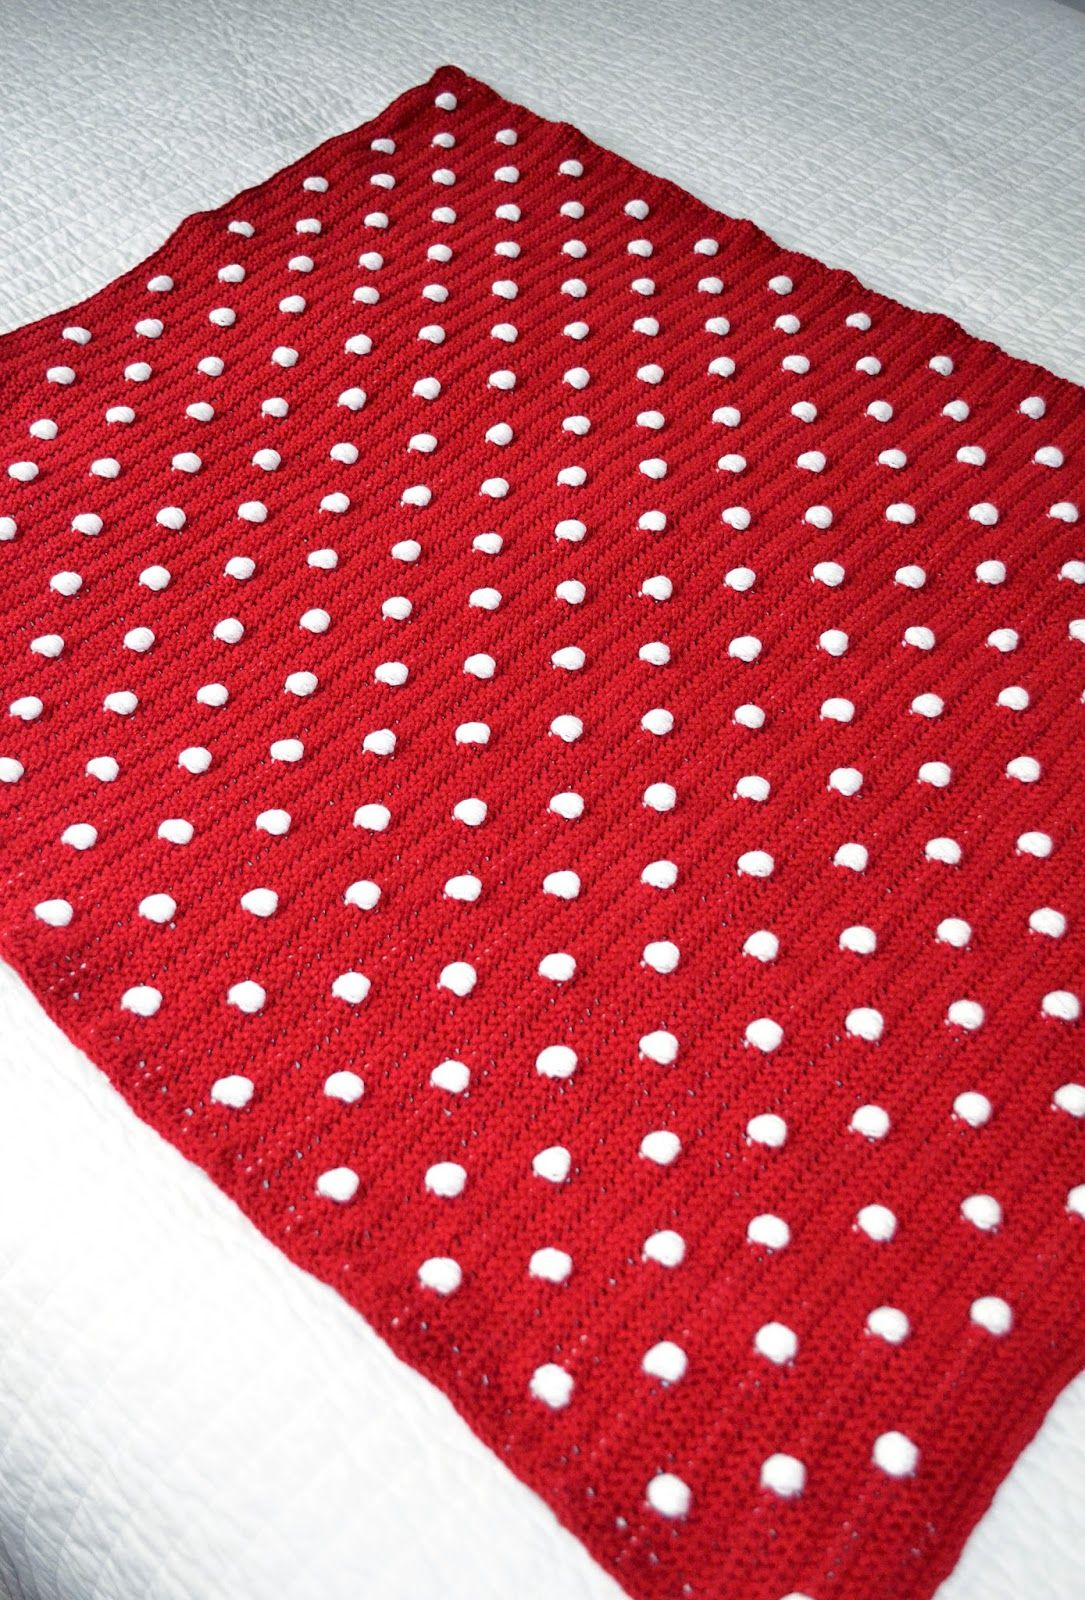 All Things Bright and Beautiful: Crochet Polka Dot Blanket Pattern